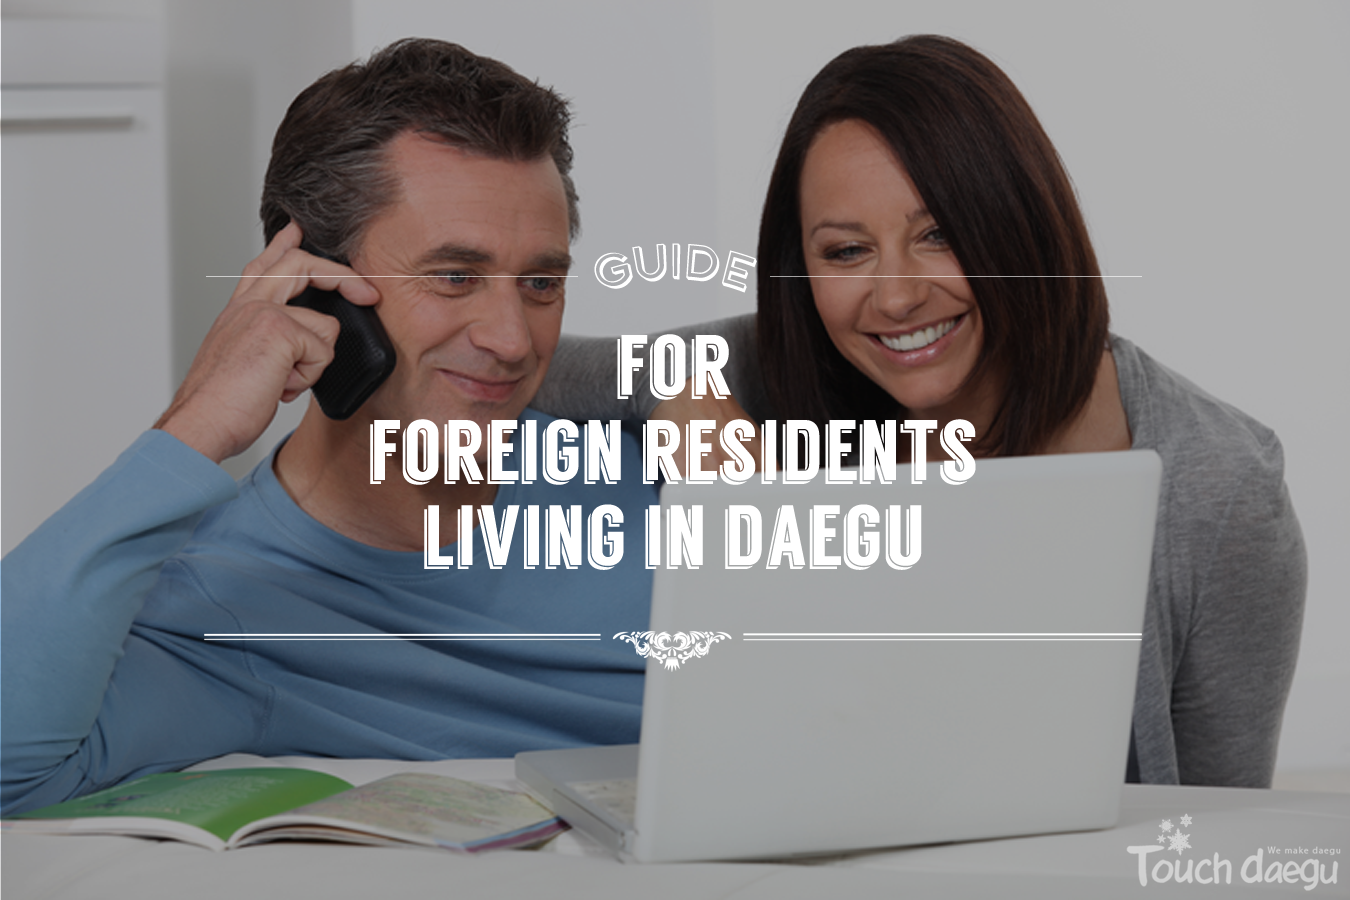 Useful information for foreign residents in Daegu